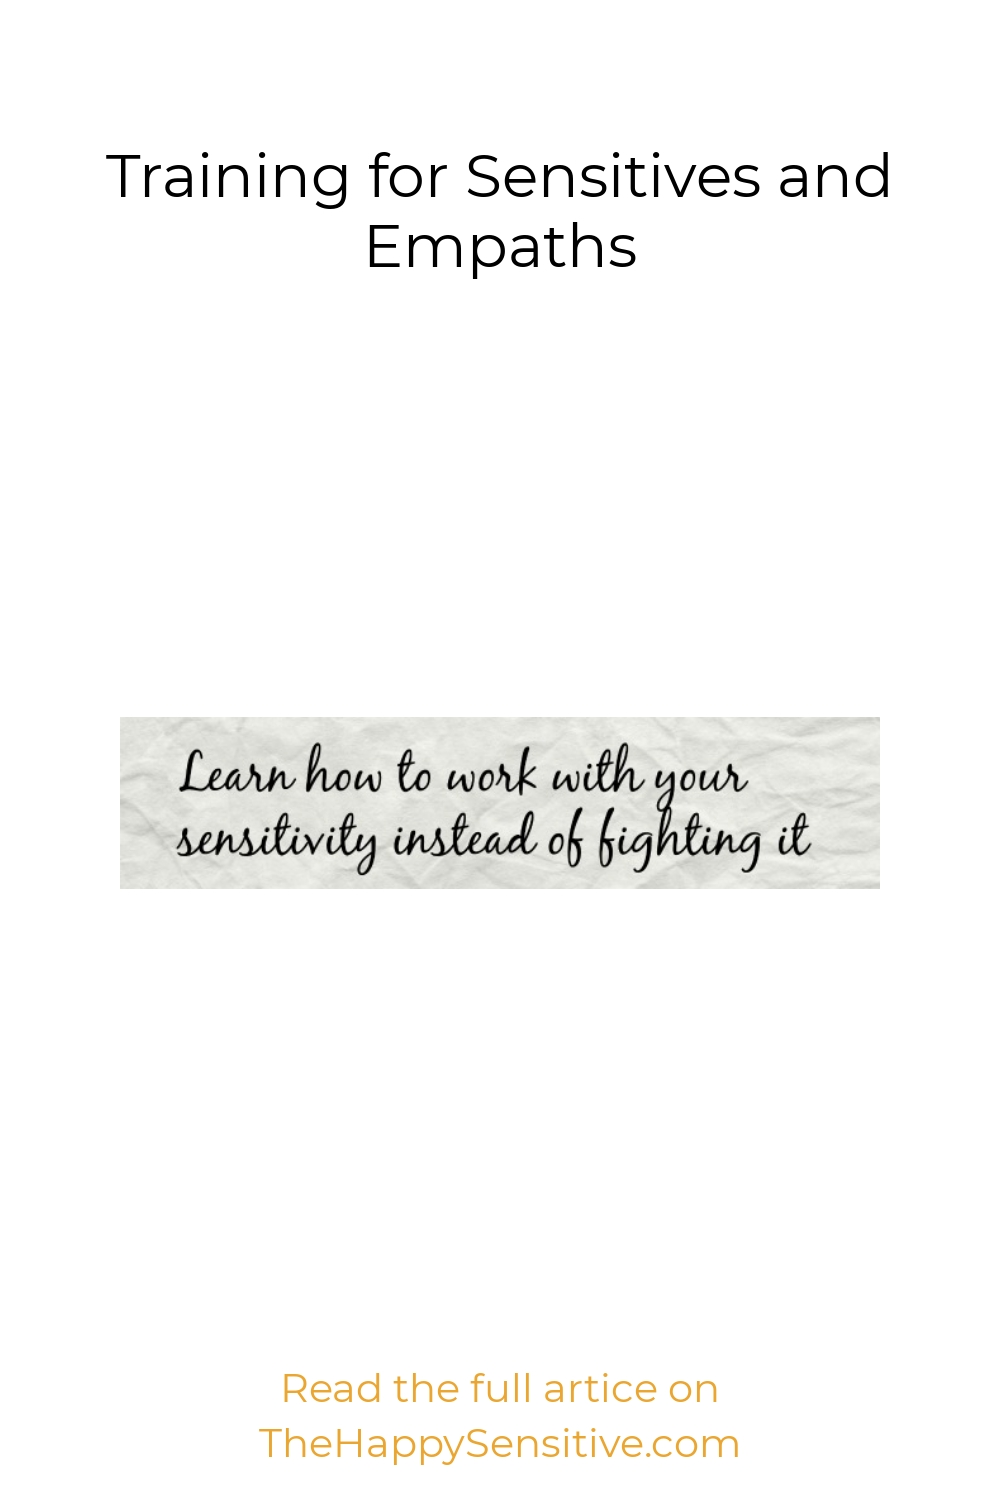 Training for Sensitives and Empaths